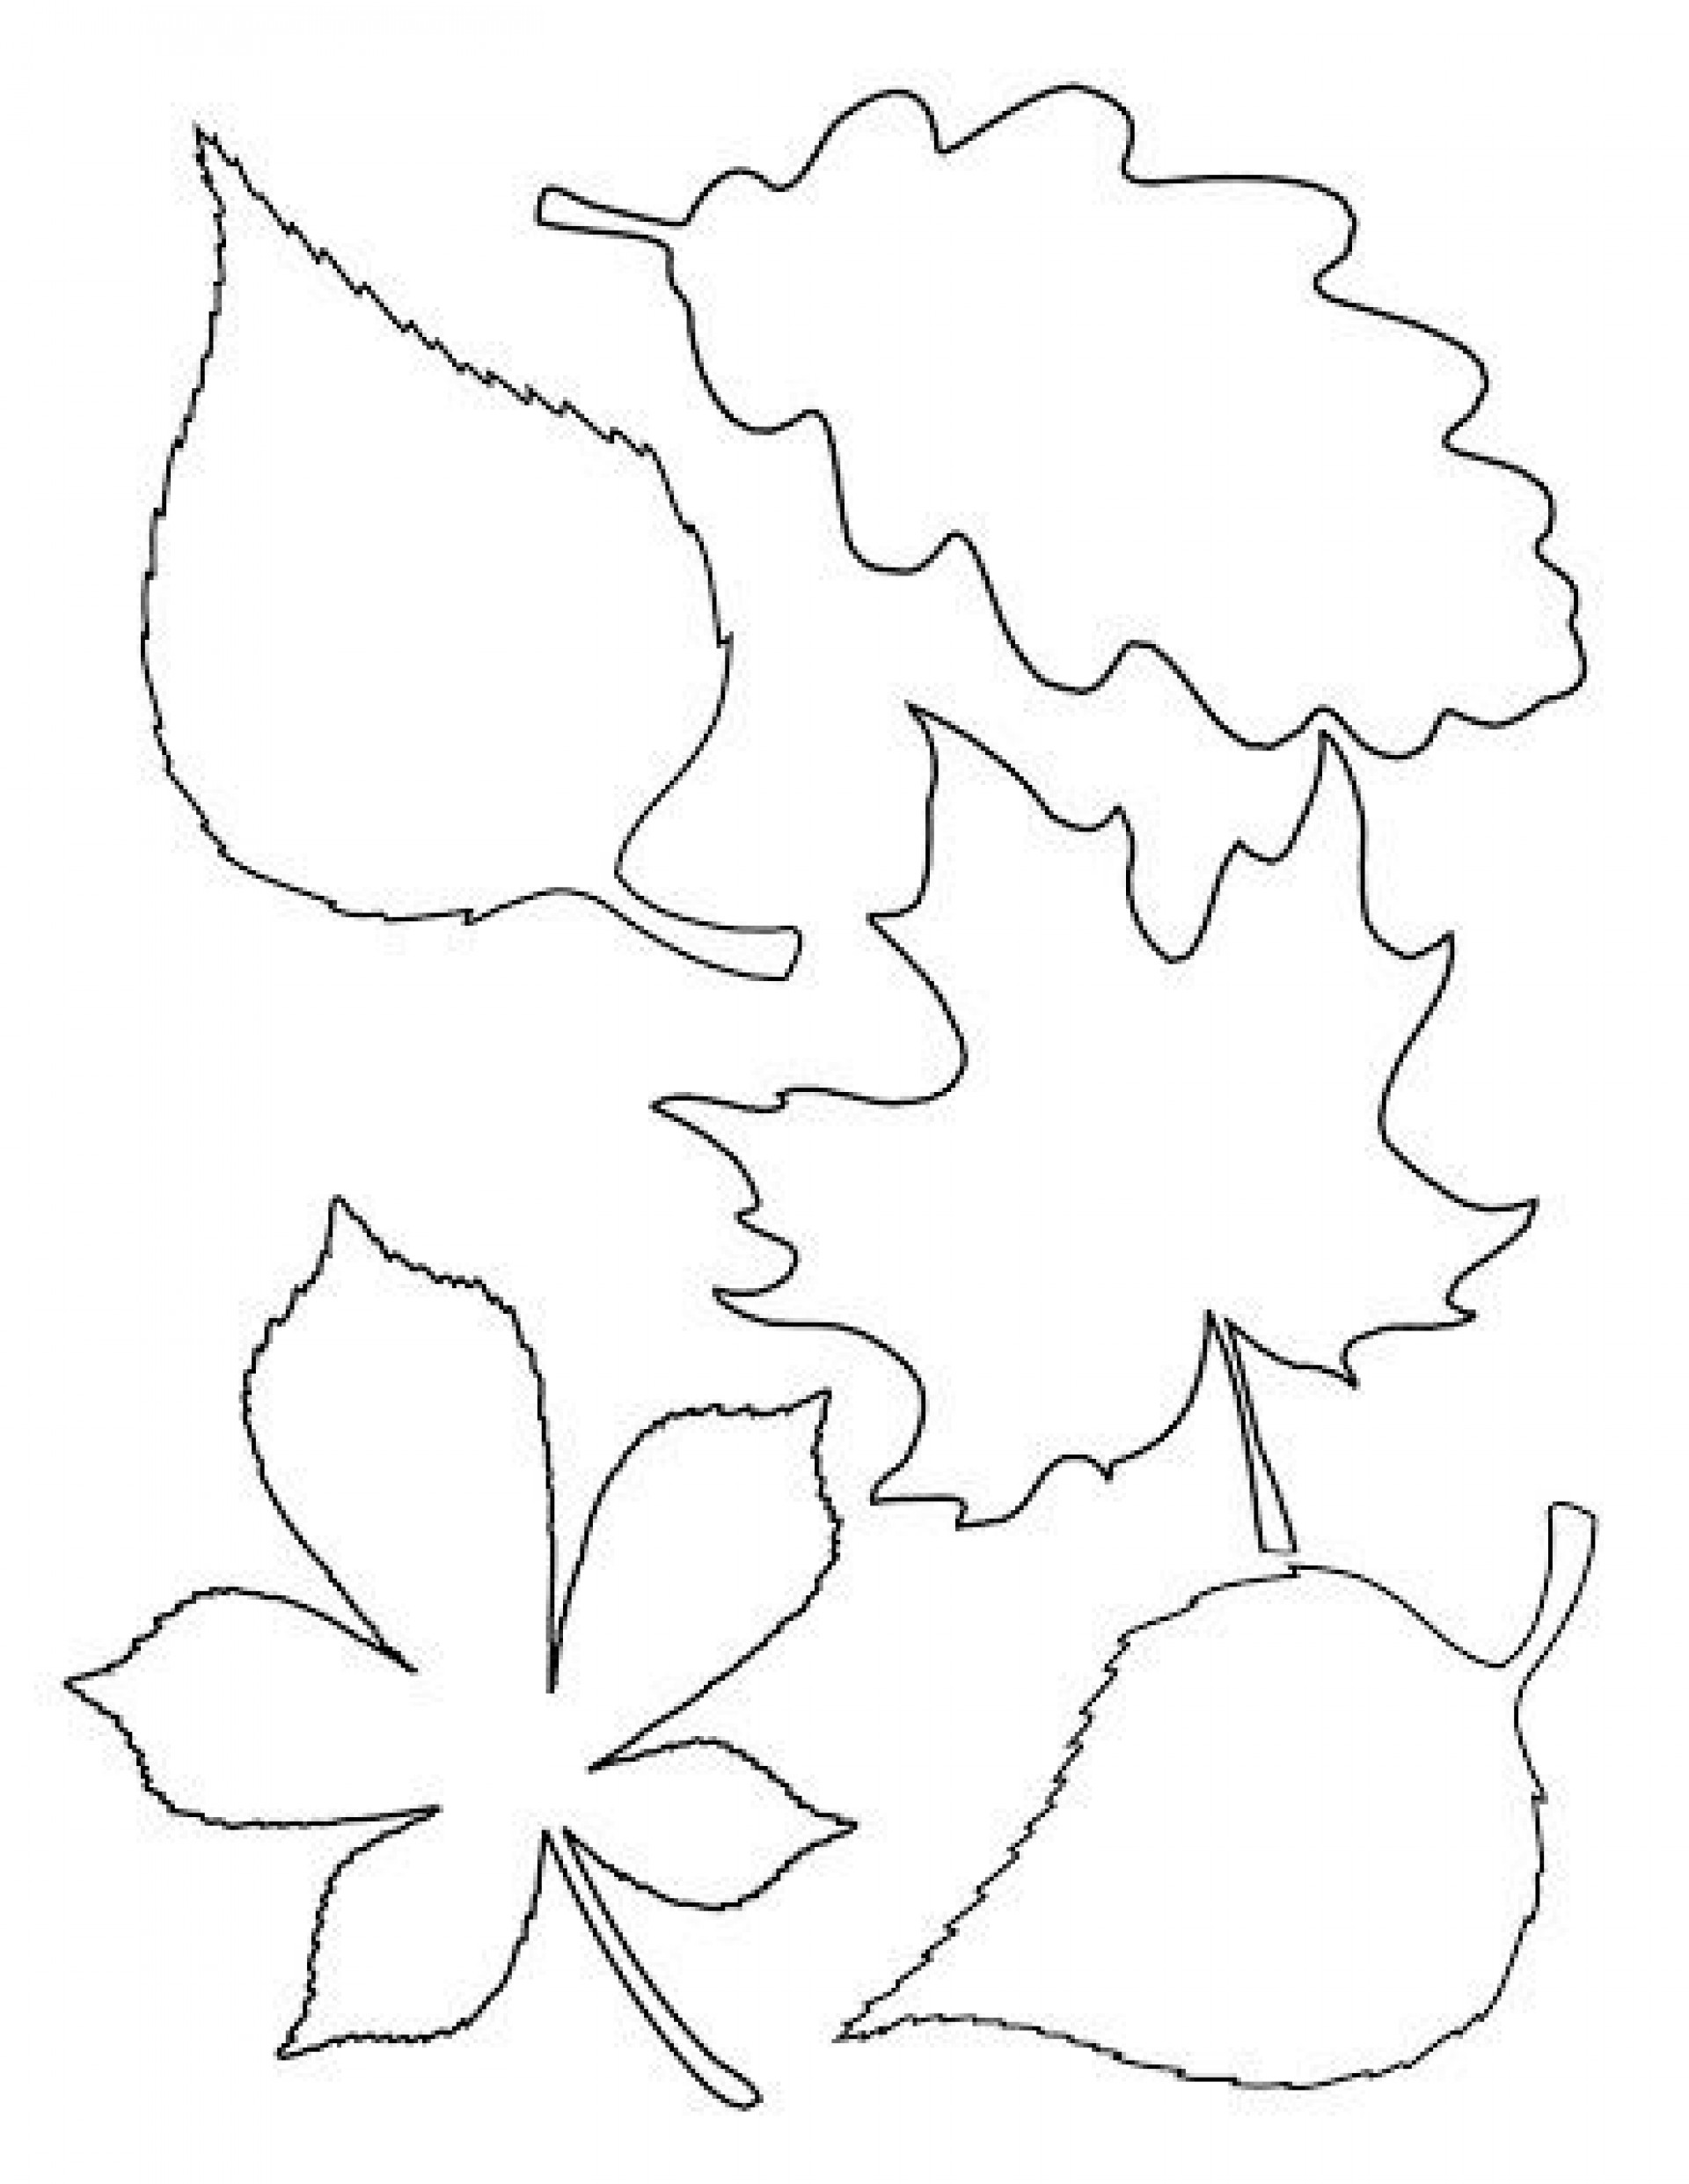 004 Unique Blank Leaf Template With Line Design  Lines Printable1920